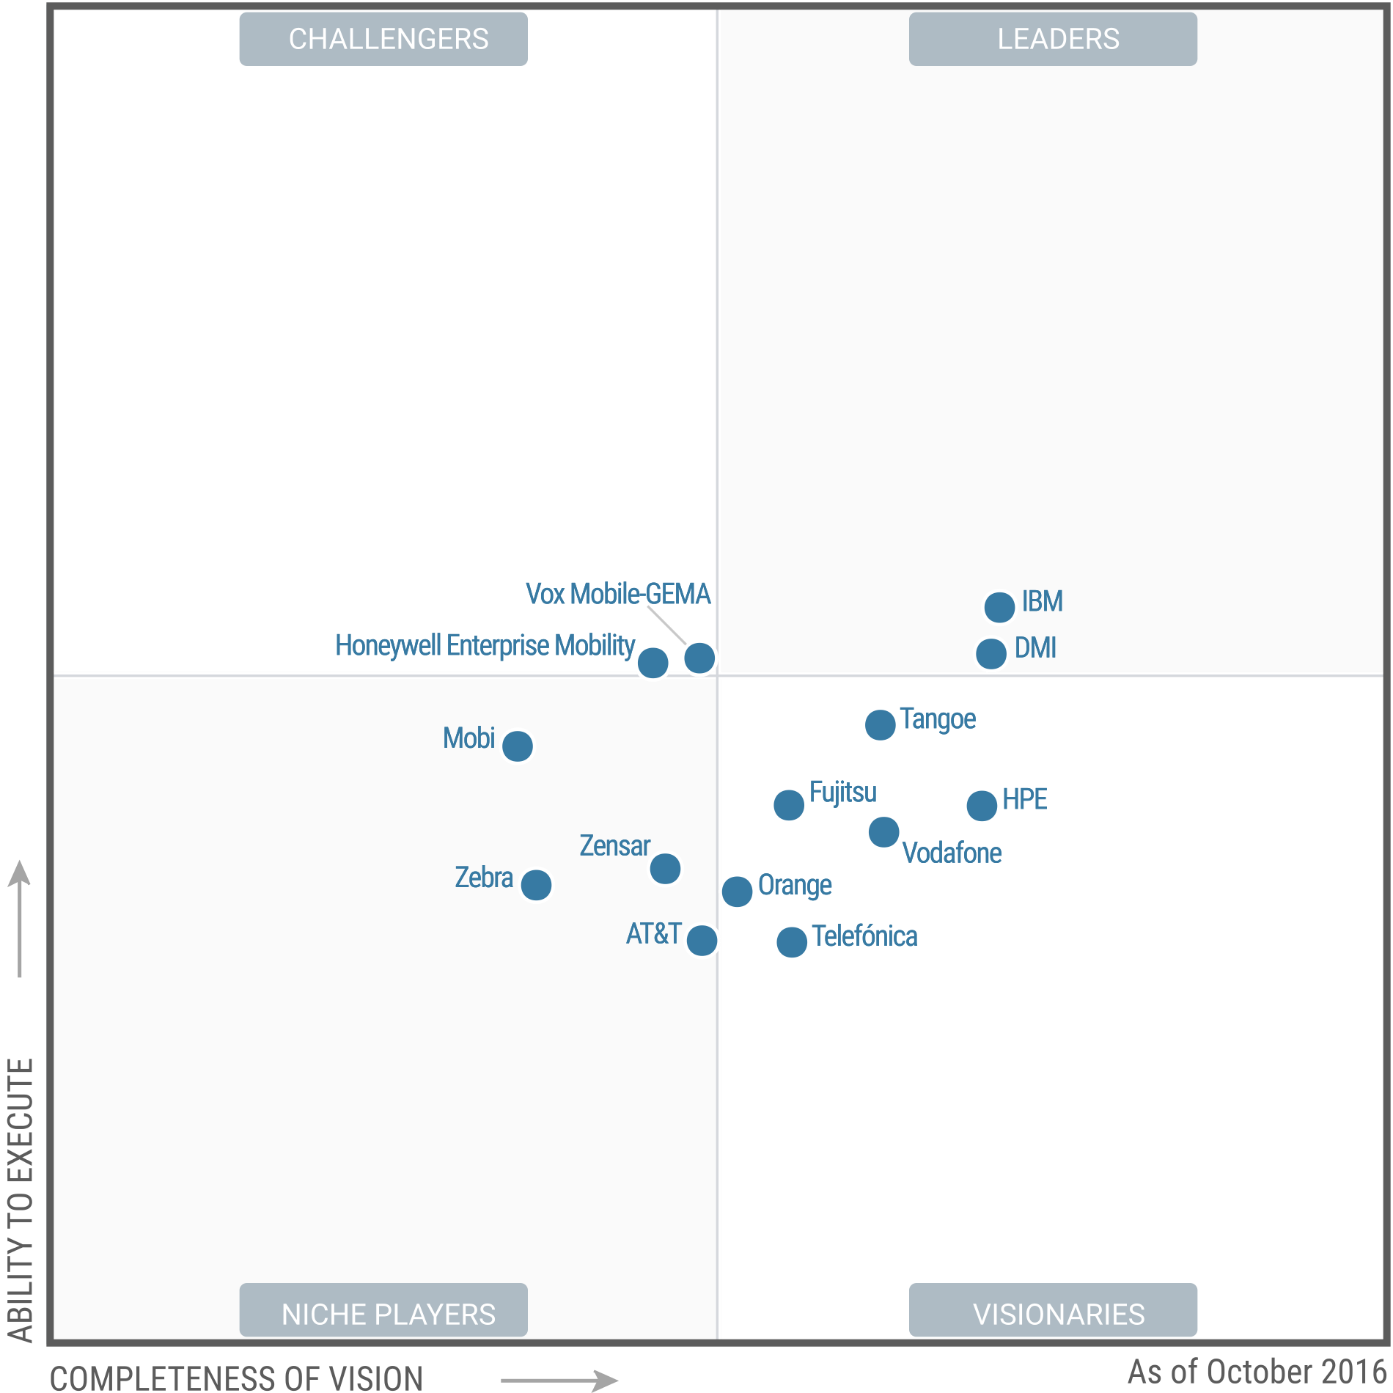 Magic Quadrant for Managed Mobility Services 2016 (G00294111)